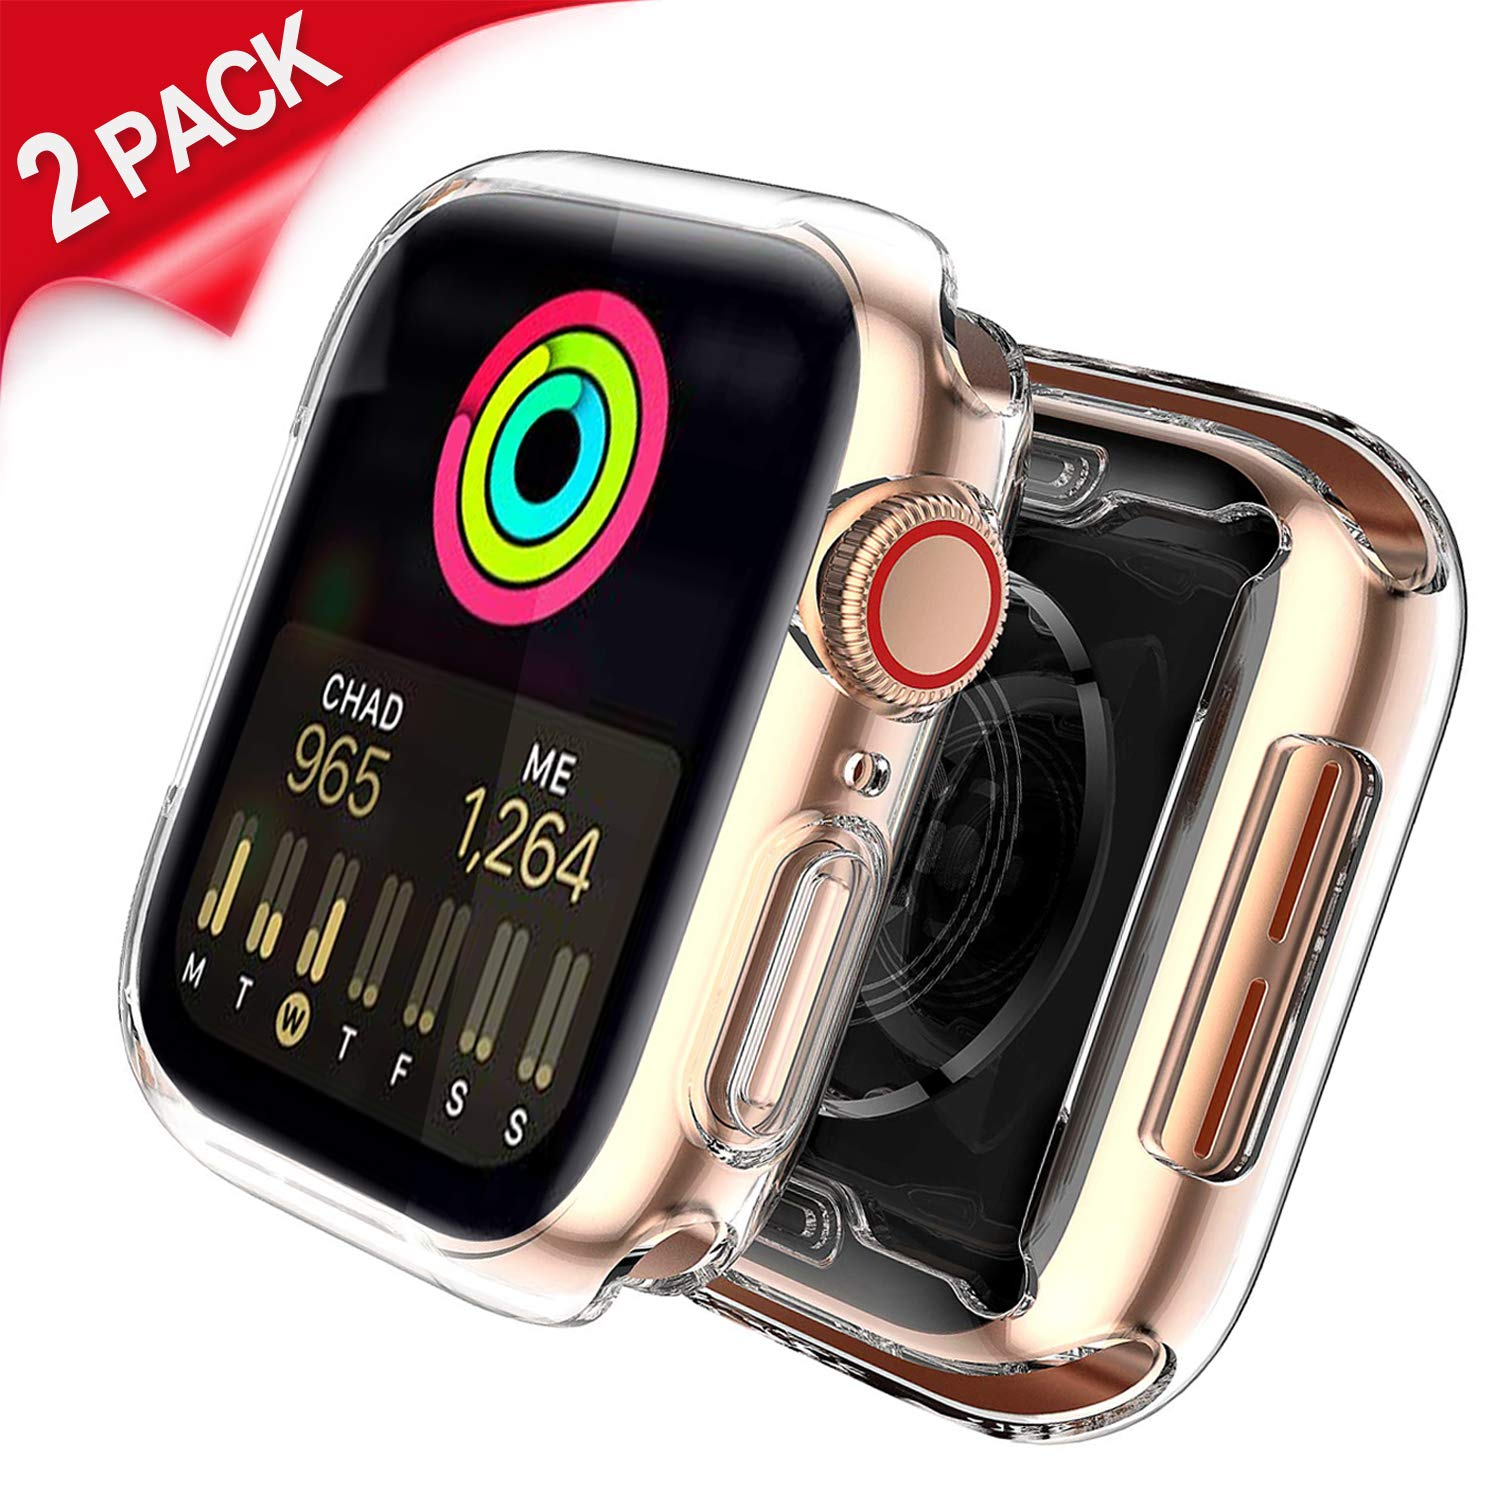 Uitee [2-Pack Clear Cases for Apple Watch Screen Protector 40mm Series 4, Full Coverage Protective Case TPU HD Ultra-Thin Cover + [1-Pack] Apple Watch Band 40MM Sport Loop, Pink Sand by Uitee